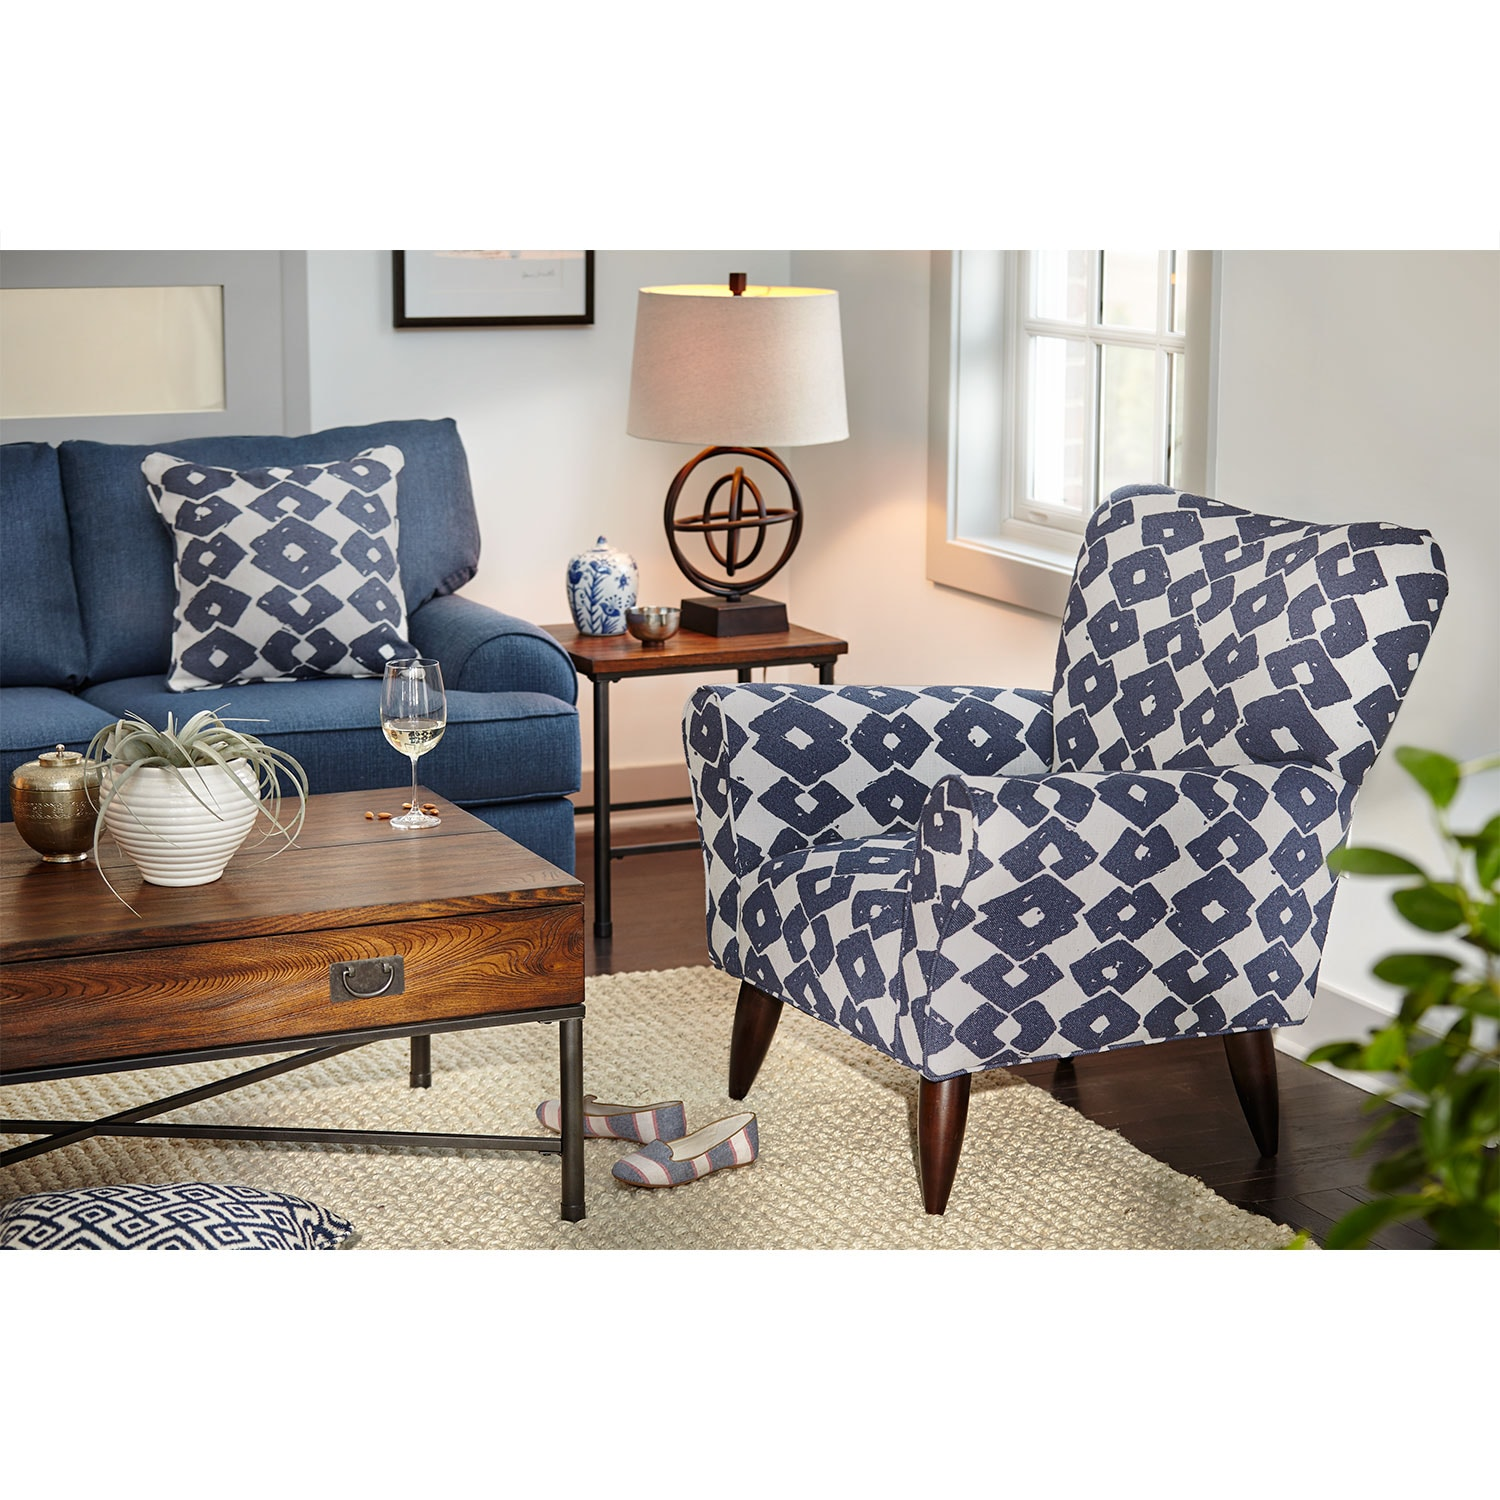 innovative accent chairs living room furniture   Jessie Accent Chair - Blue   Value City Furniture